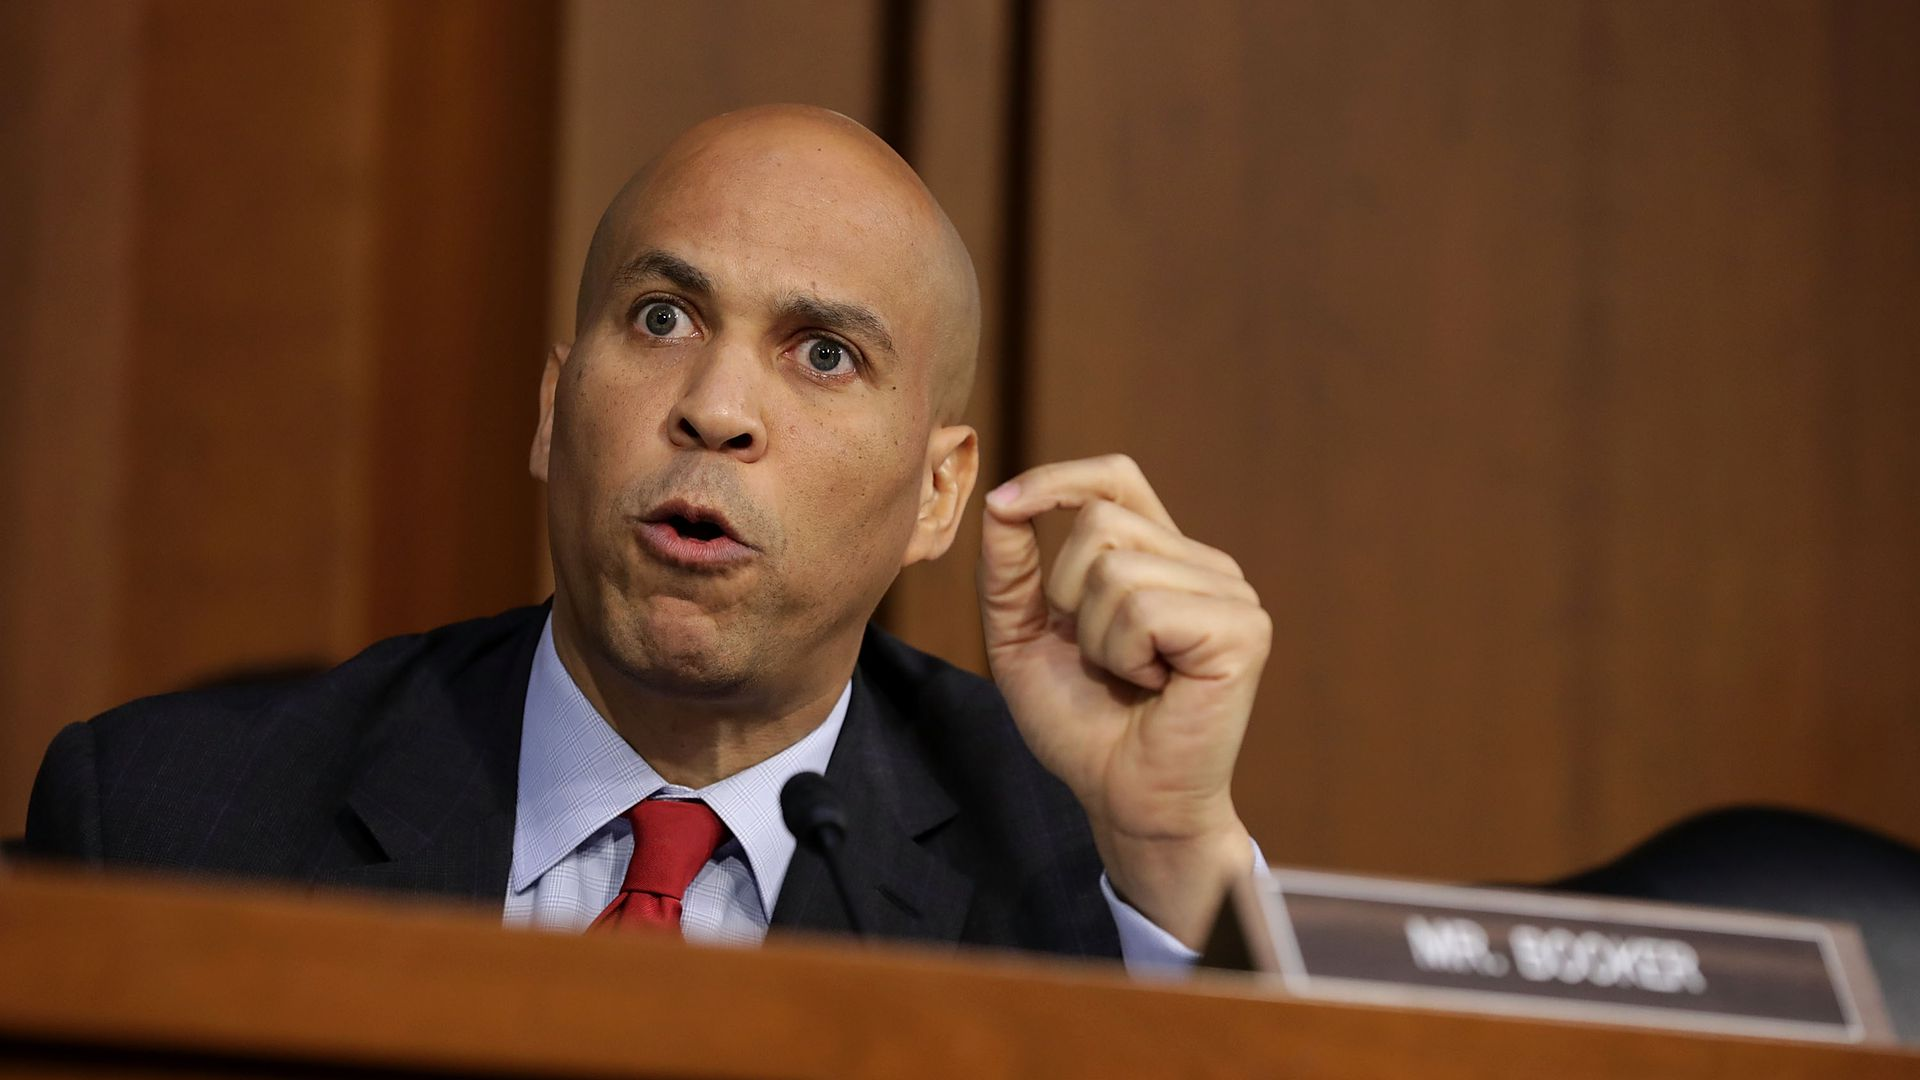 Sen. Cory Booker speaking angrily in a hearing